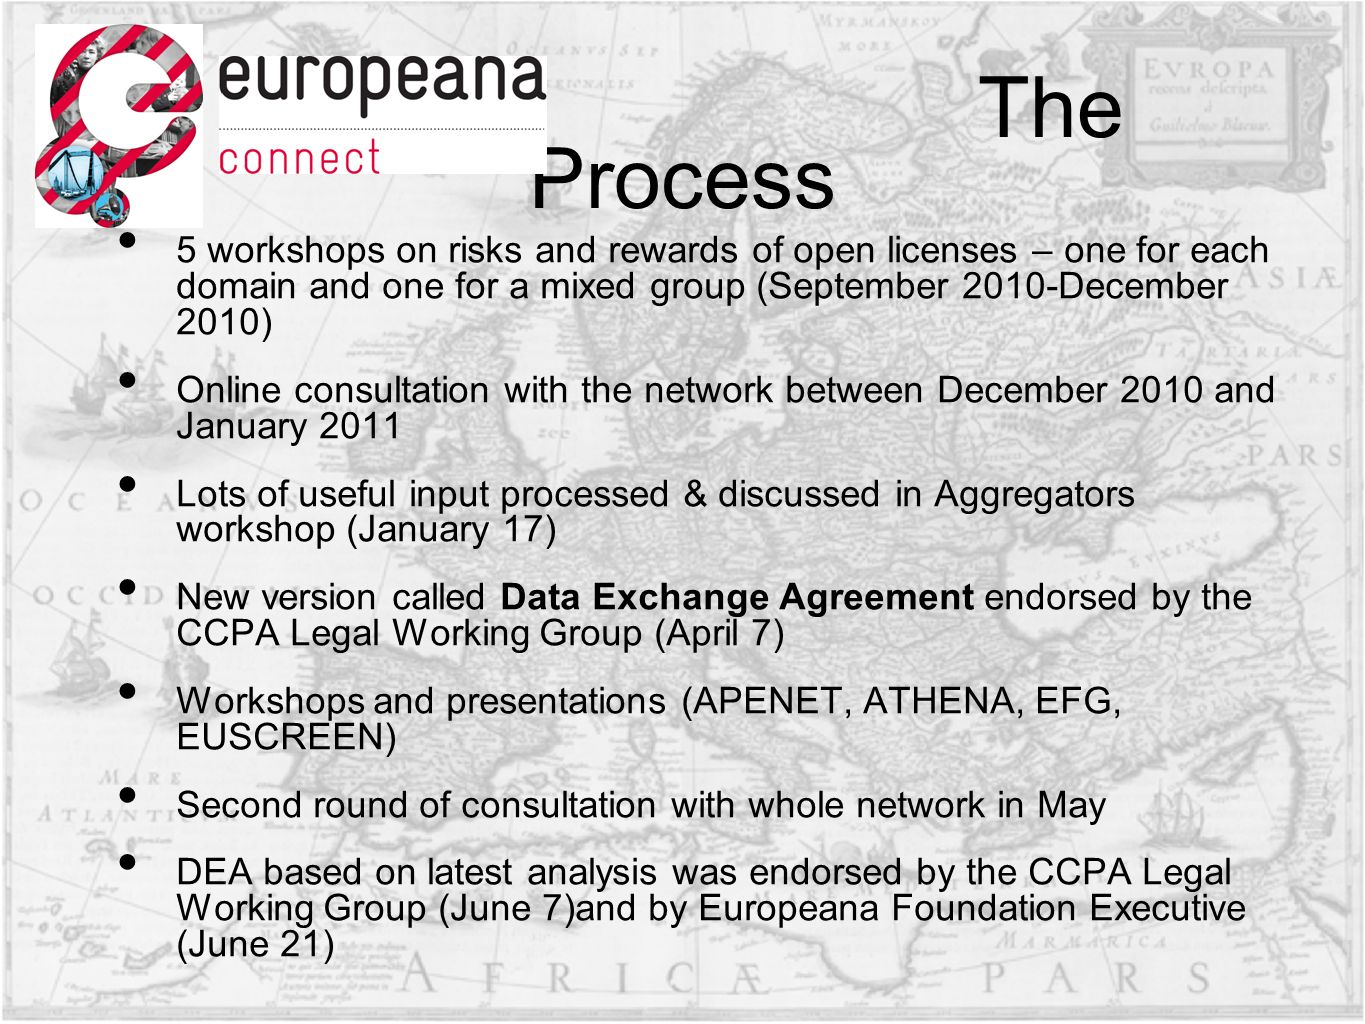 The Process 5 workshops on risks and rewards of open licenses – one for each domain and one for a mixed group (September 2010-December 2010) Online consultation with the network between December 2010 and January 2011 Lots of useful input processed & discussed in Aggregators workshop (January 17) New version called Data Exchange Agreement endorsed by the CCPA Legal Working Group (April 7) Workshops and presentations (APENET, ATHENA, EFG, EUSCREEN) Second round of consultation with whole network in May DEA based on latest analysis was endorsed by the CCPA Legal Working Group (June 7)and by Europeana Foundation Executive (June 21)